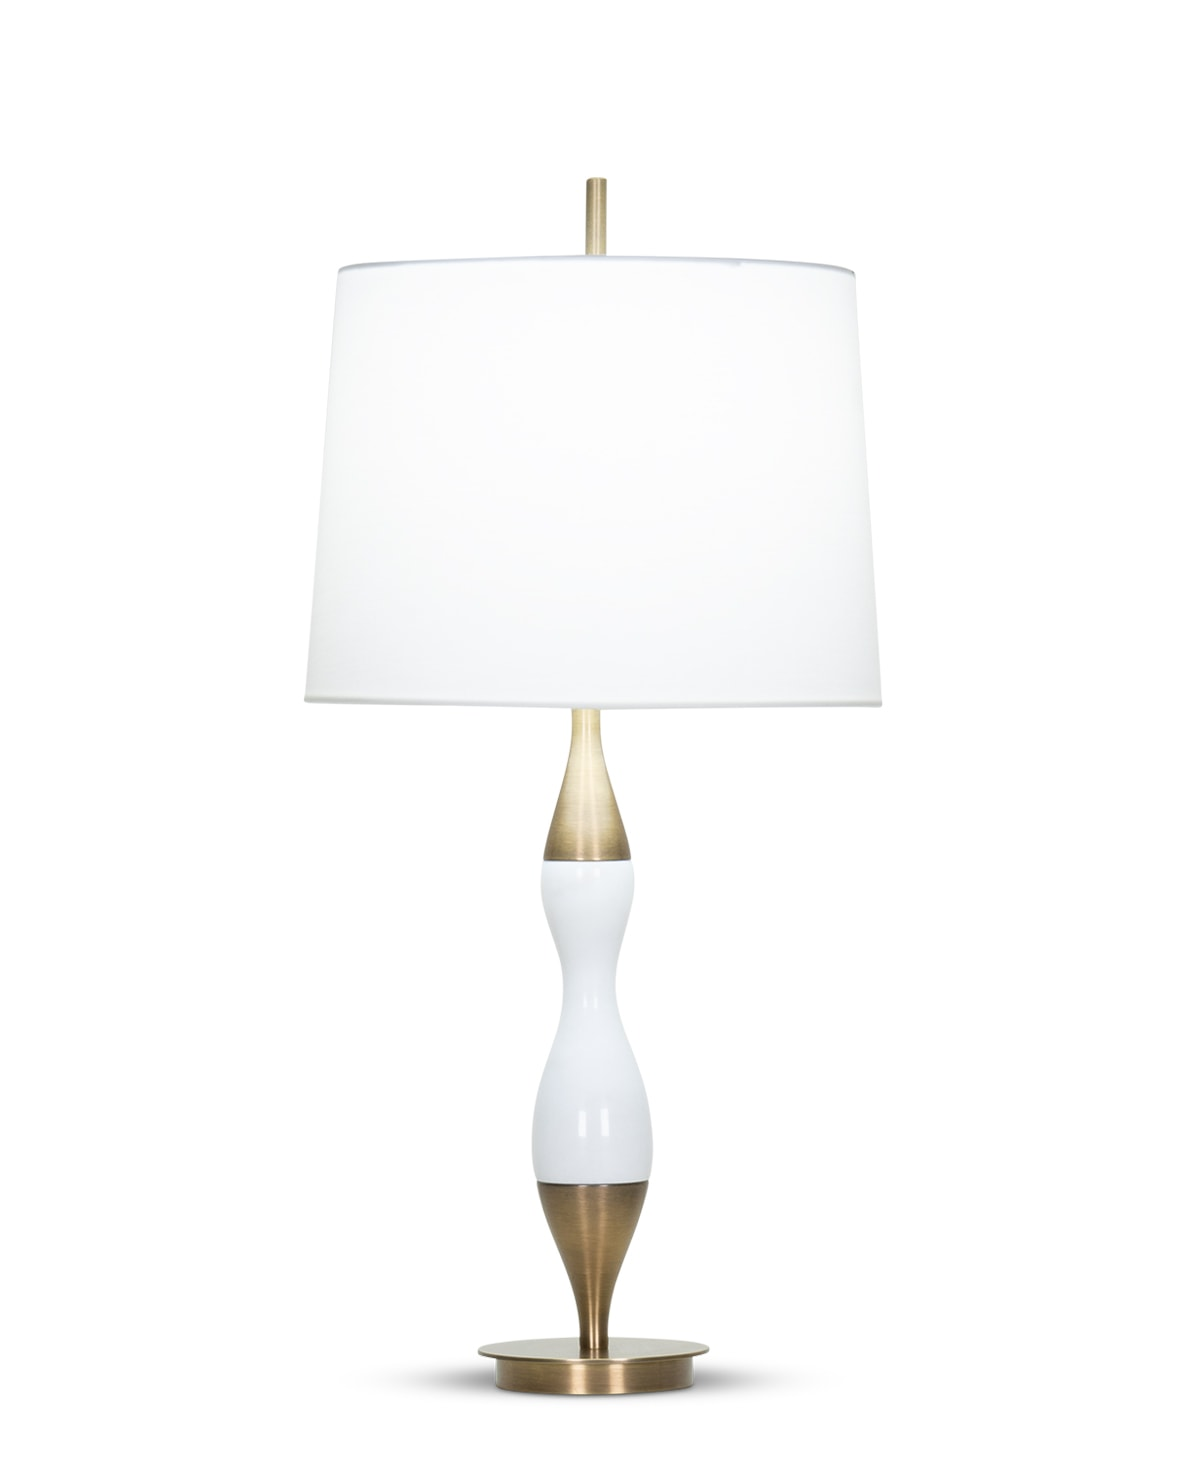 FlowDecor Columbia Table Lamp in white marble and metal with antique brass finish and off-white cotton tapered drum shade (# 4365)